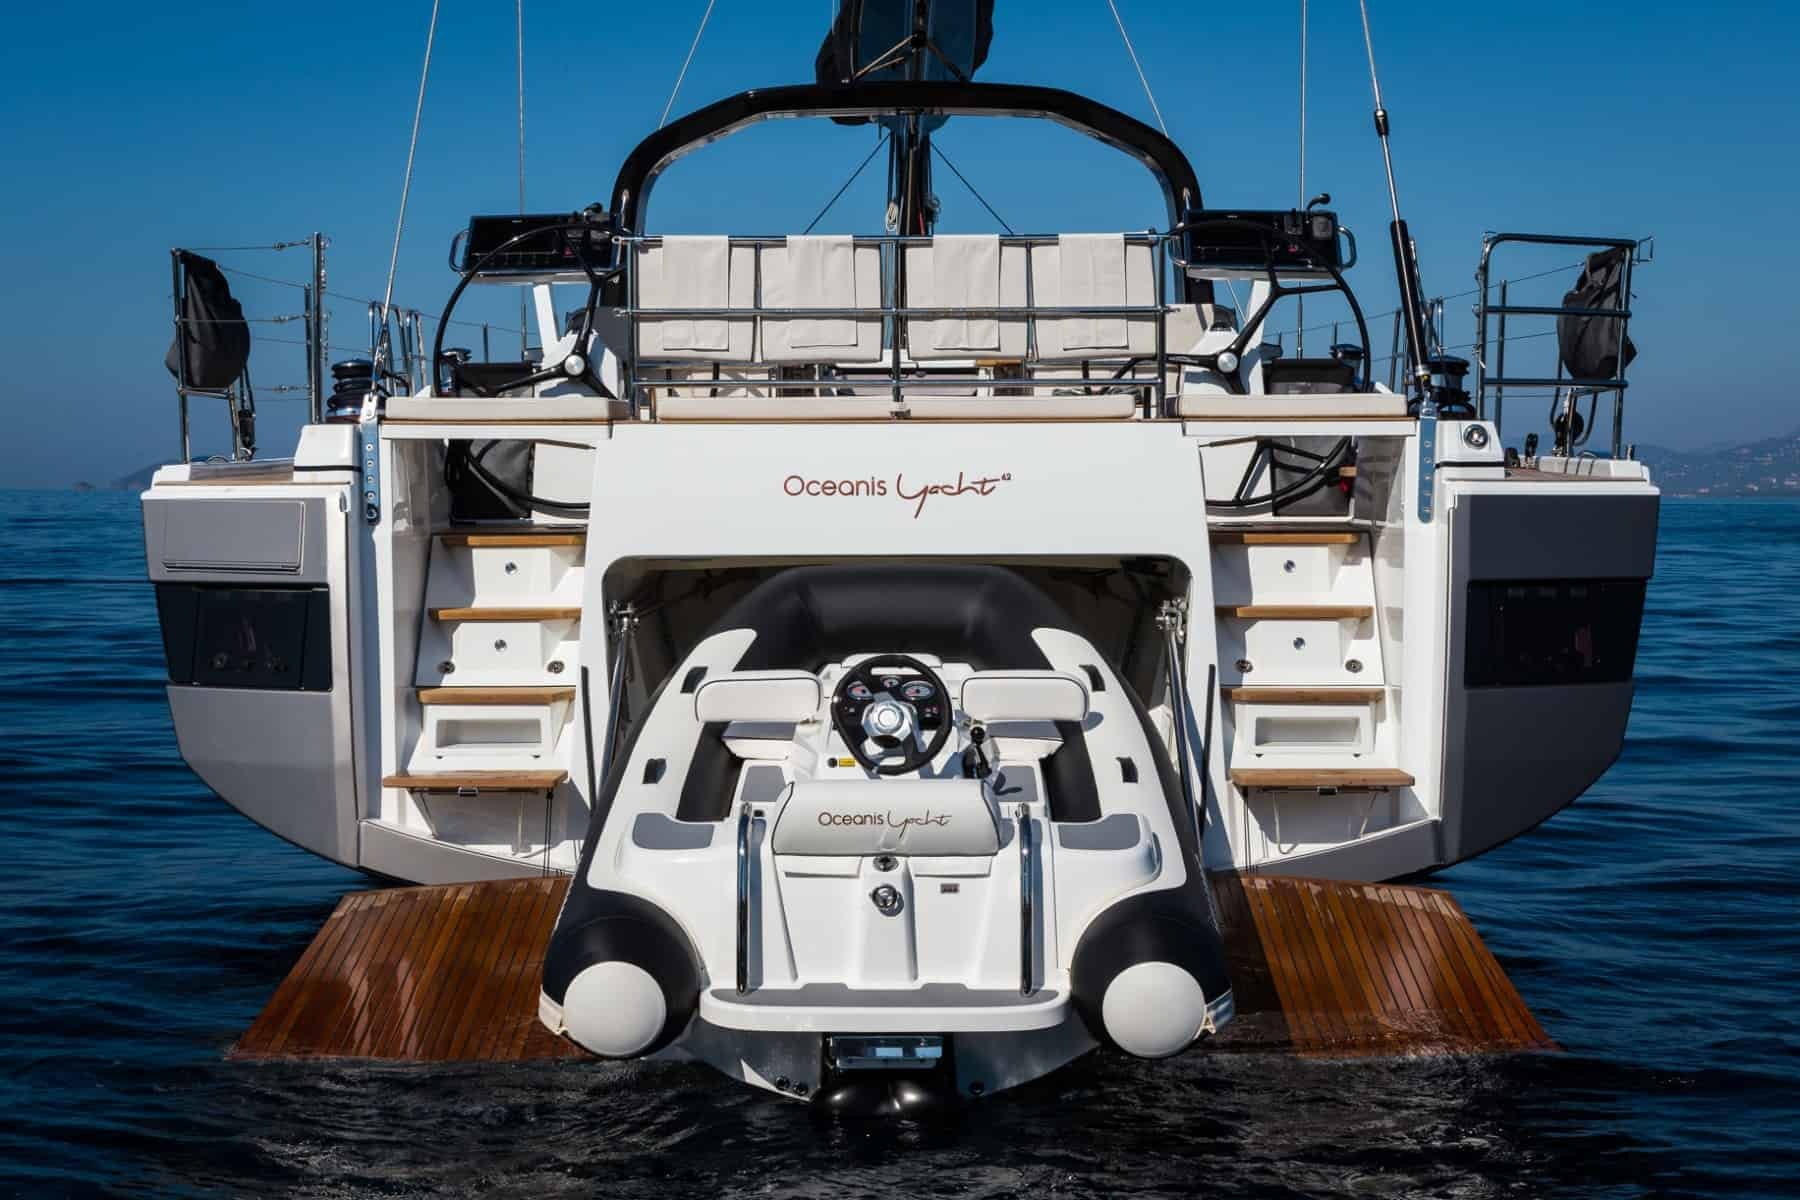 The amazing tender garage of the Beneteau Oceanis Yacht 62